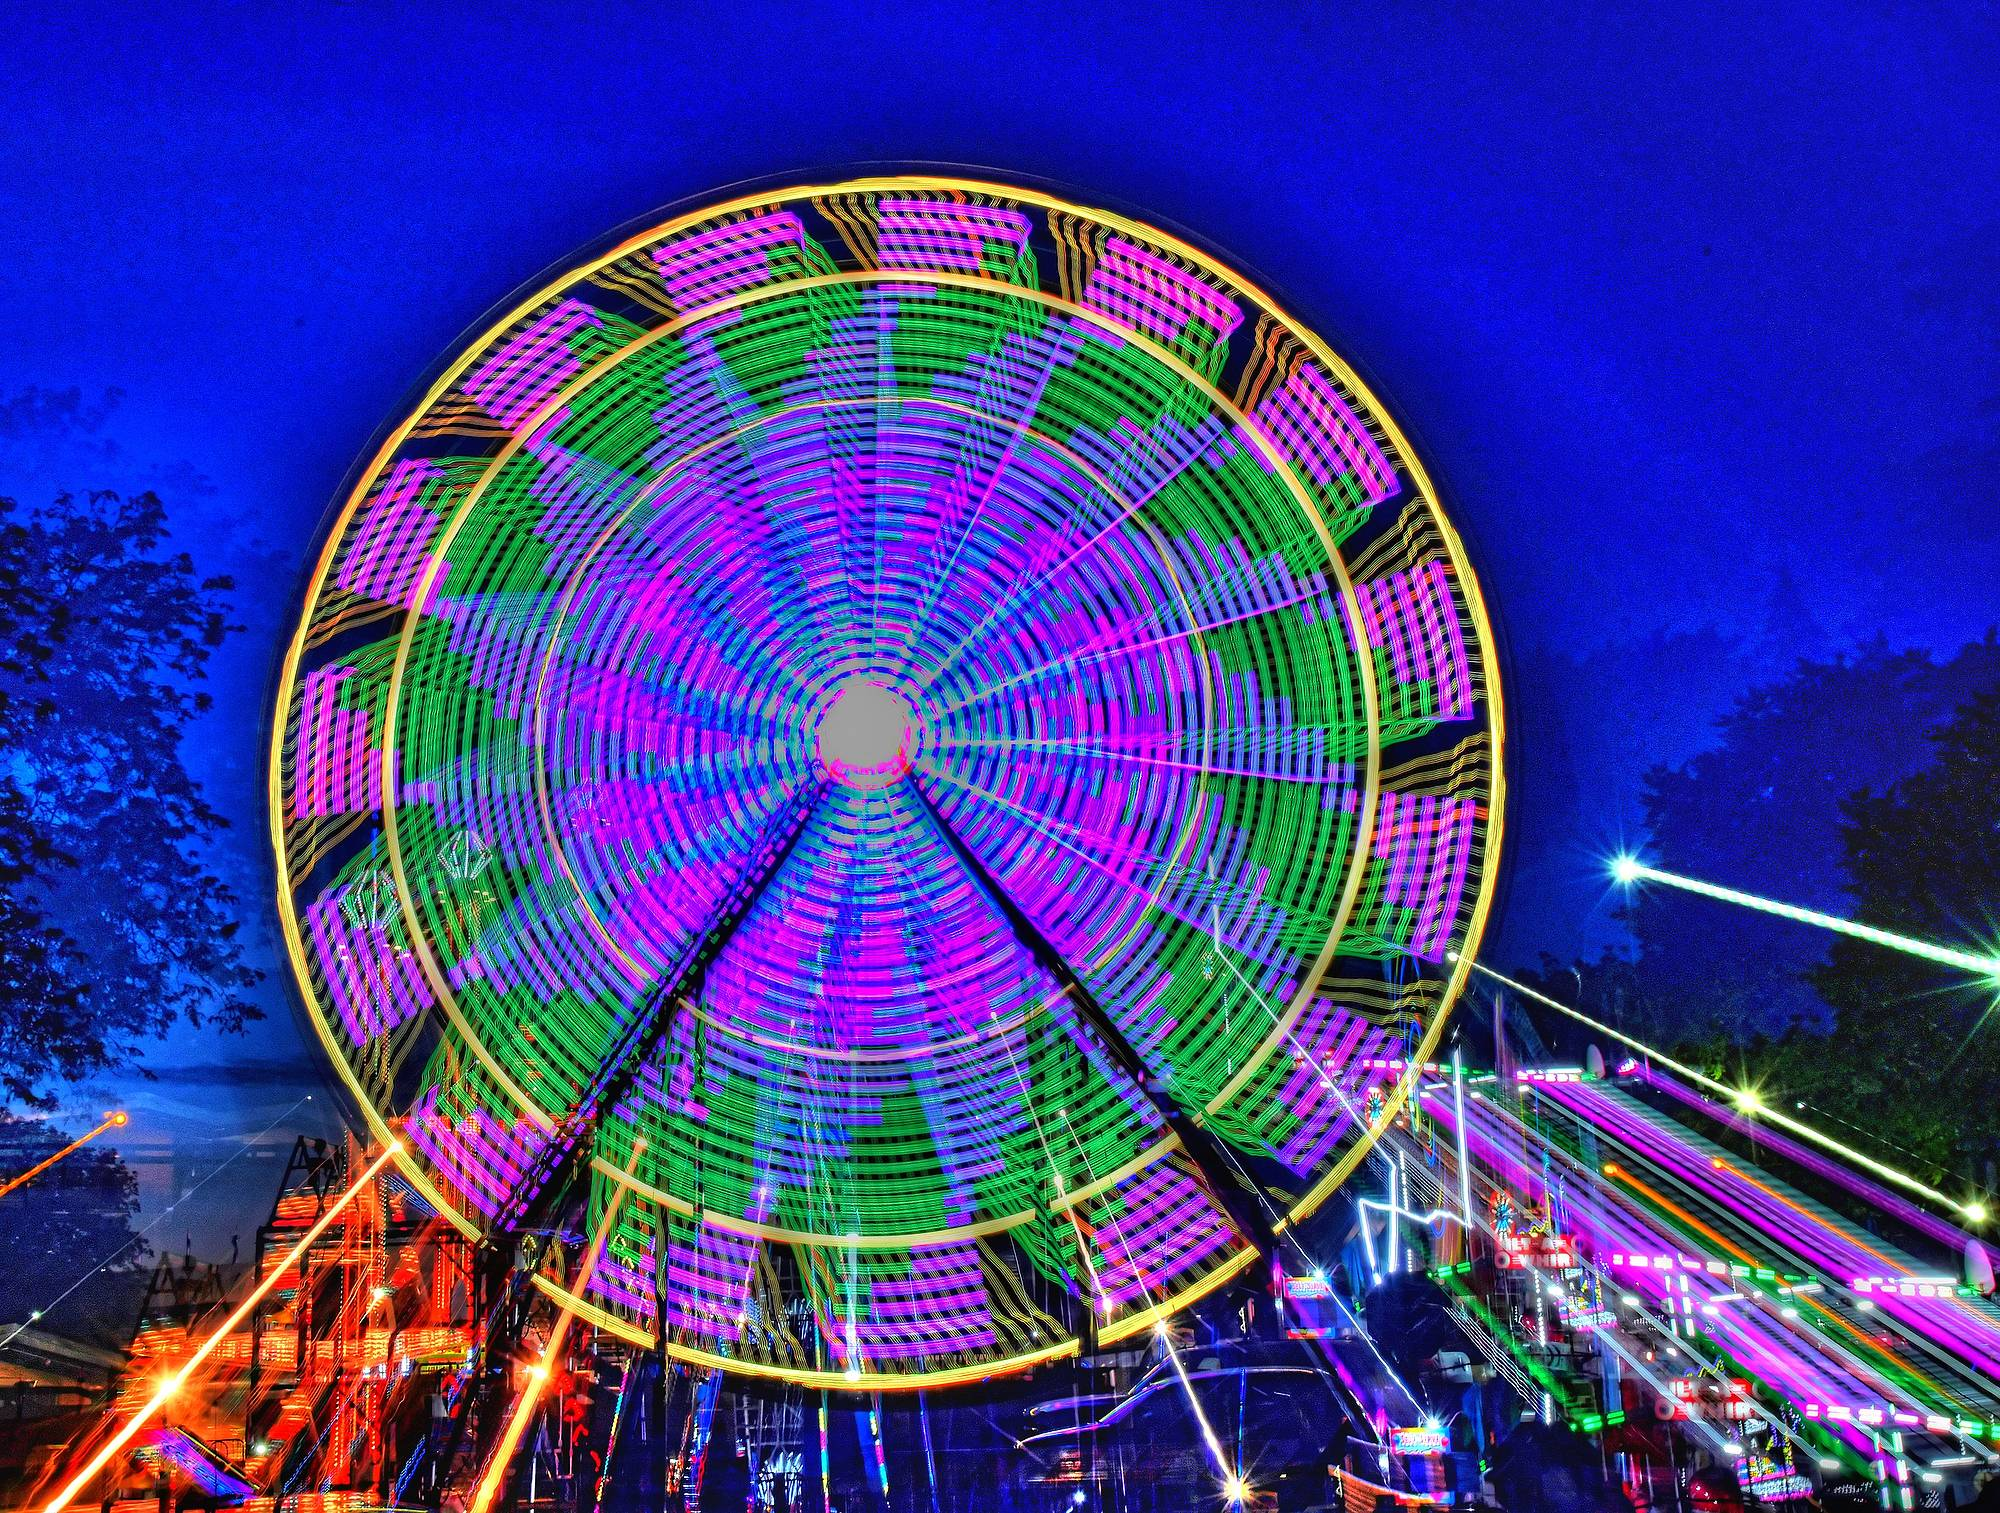 This photo was taken at the Itasca carnival. I decided to try something different from just a time exposure of the Ferris wheel. This is a 3 second exposure, during the exposure I zoomed the lens 24 mm-120 mm to get a different effect. I love the new digital lighting on the wheel because you never know what you will get till the exposure is over.